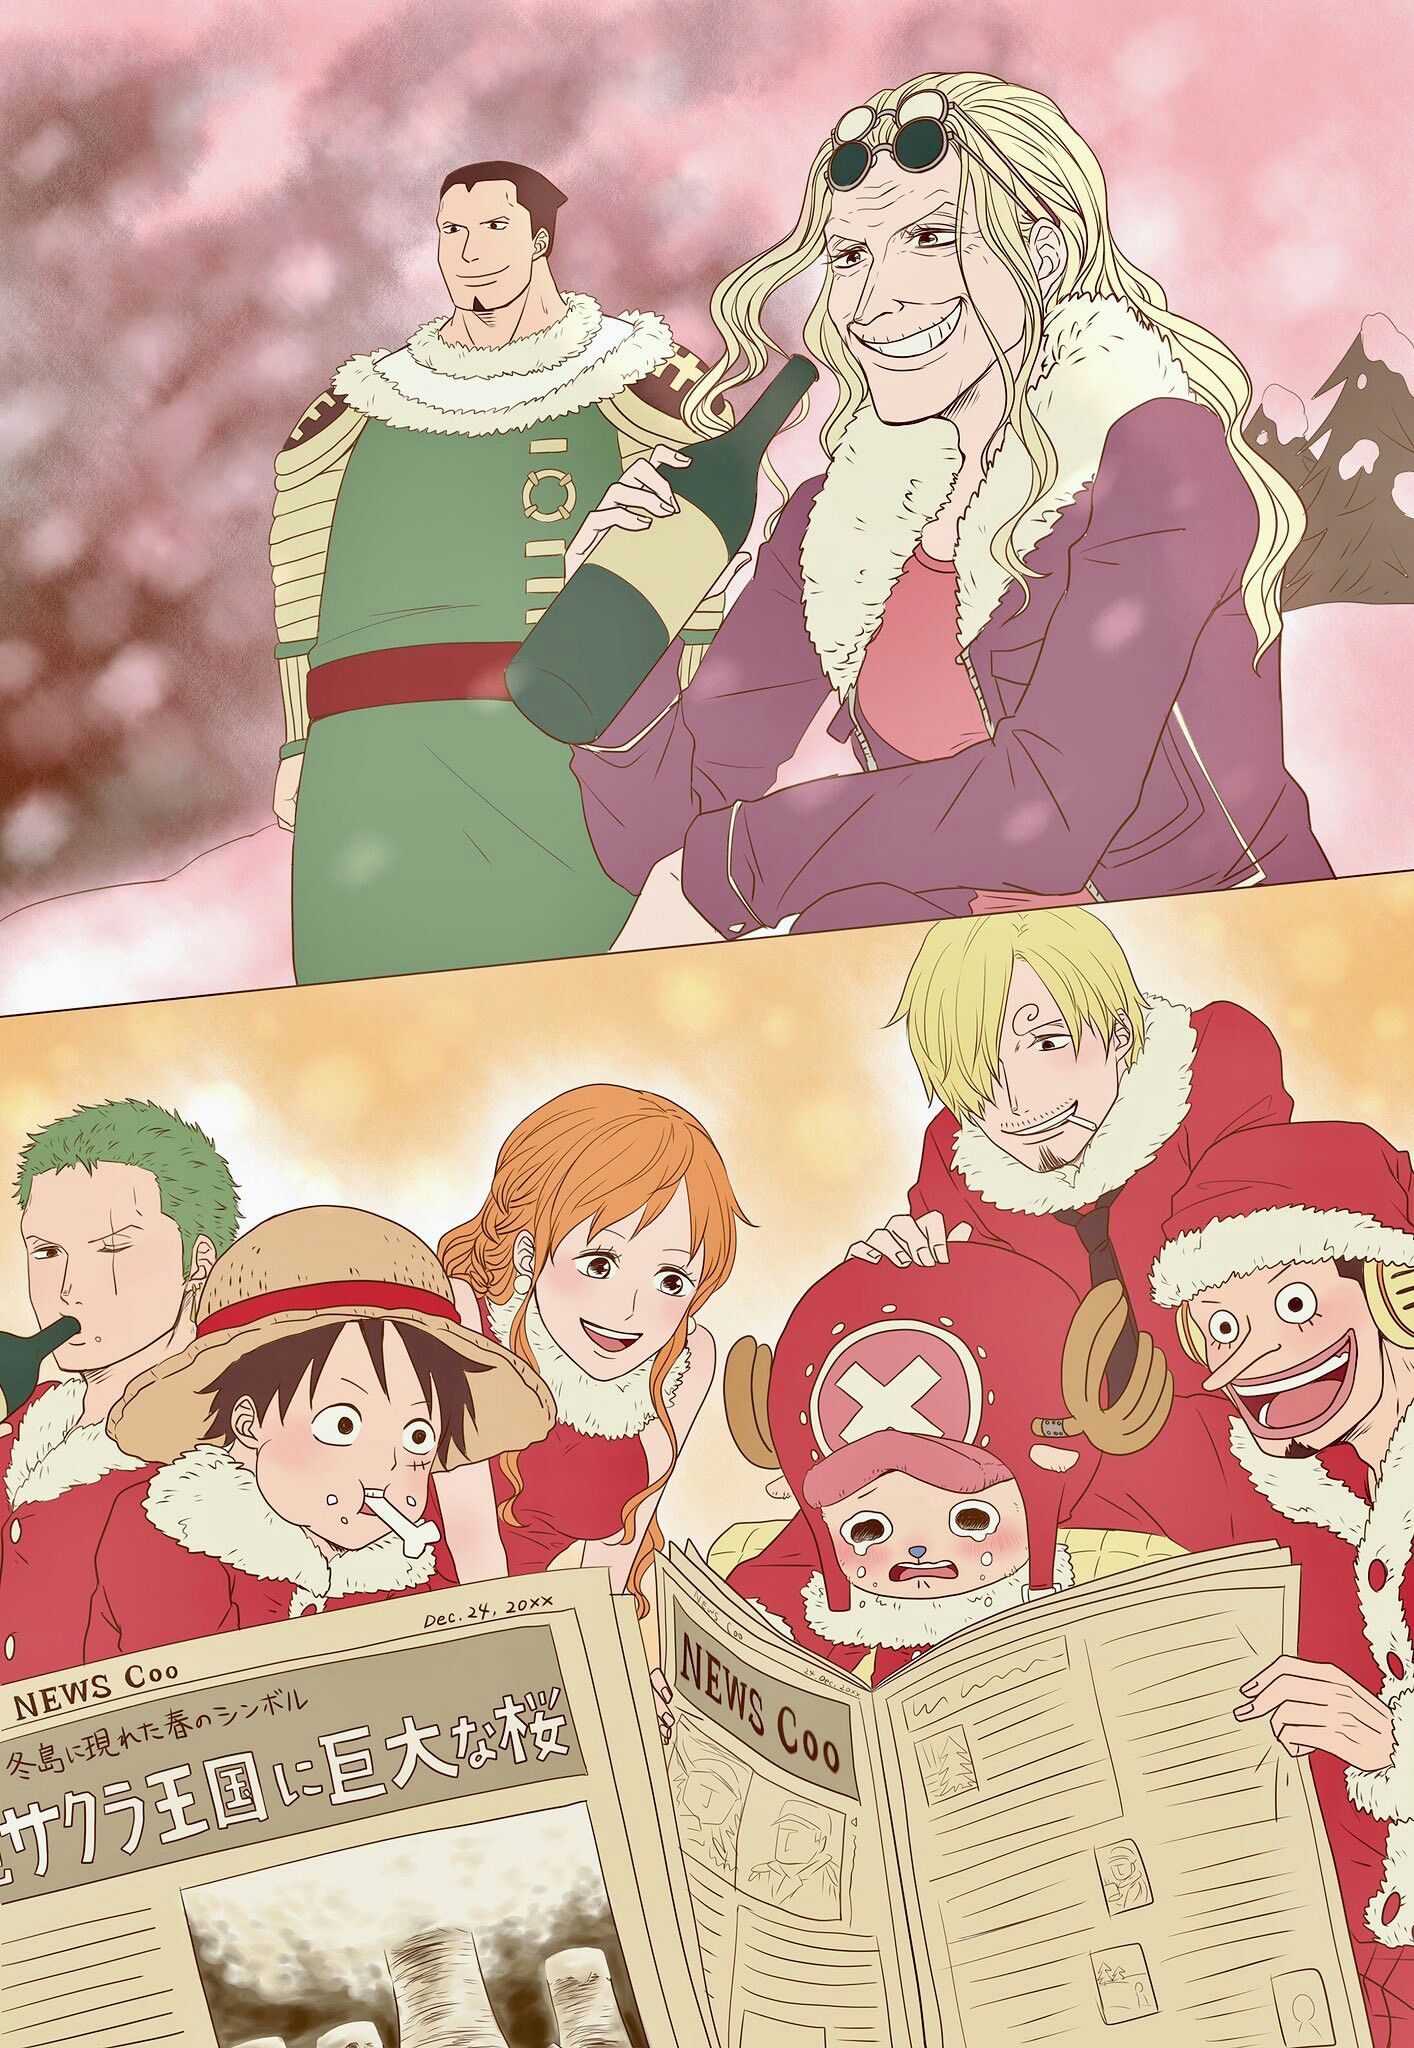 Straw Hats Reading About News In Drum Kingdom One Piece World